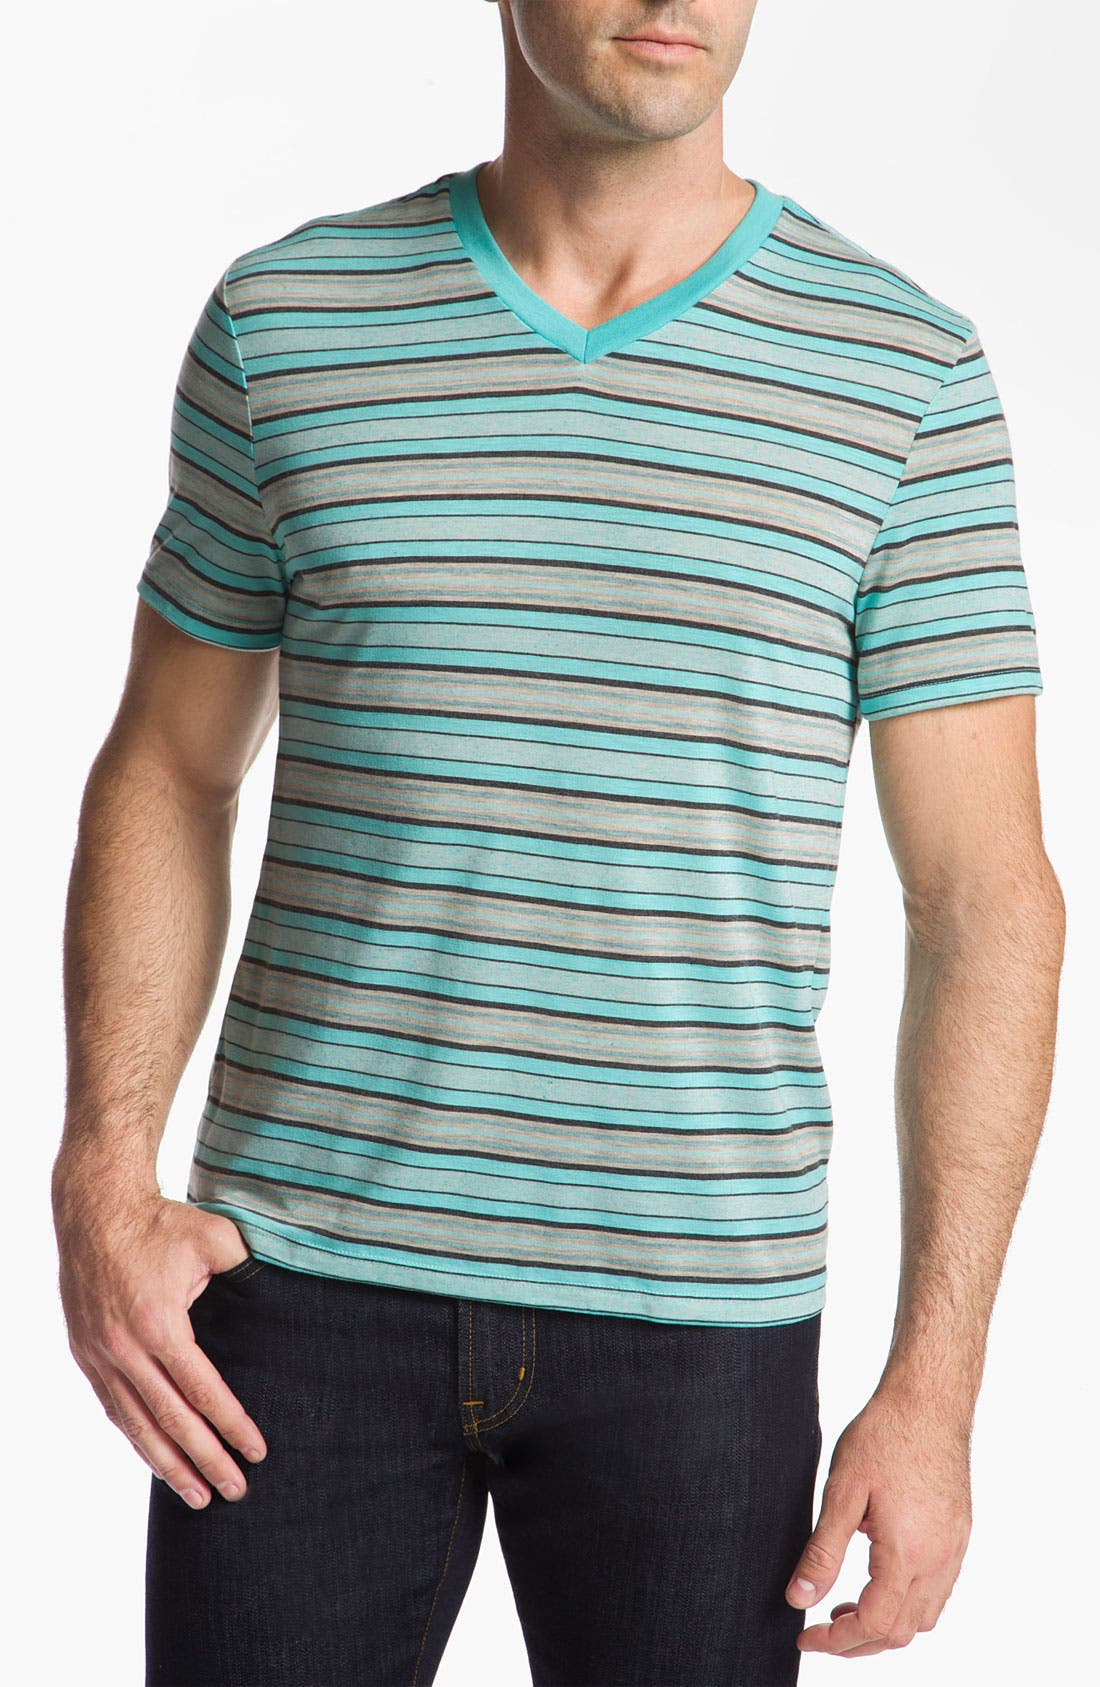 Main Image - The Rail by Public Opinion Stripe T-Shirt